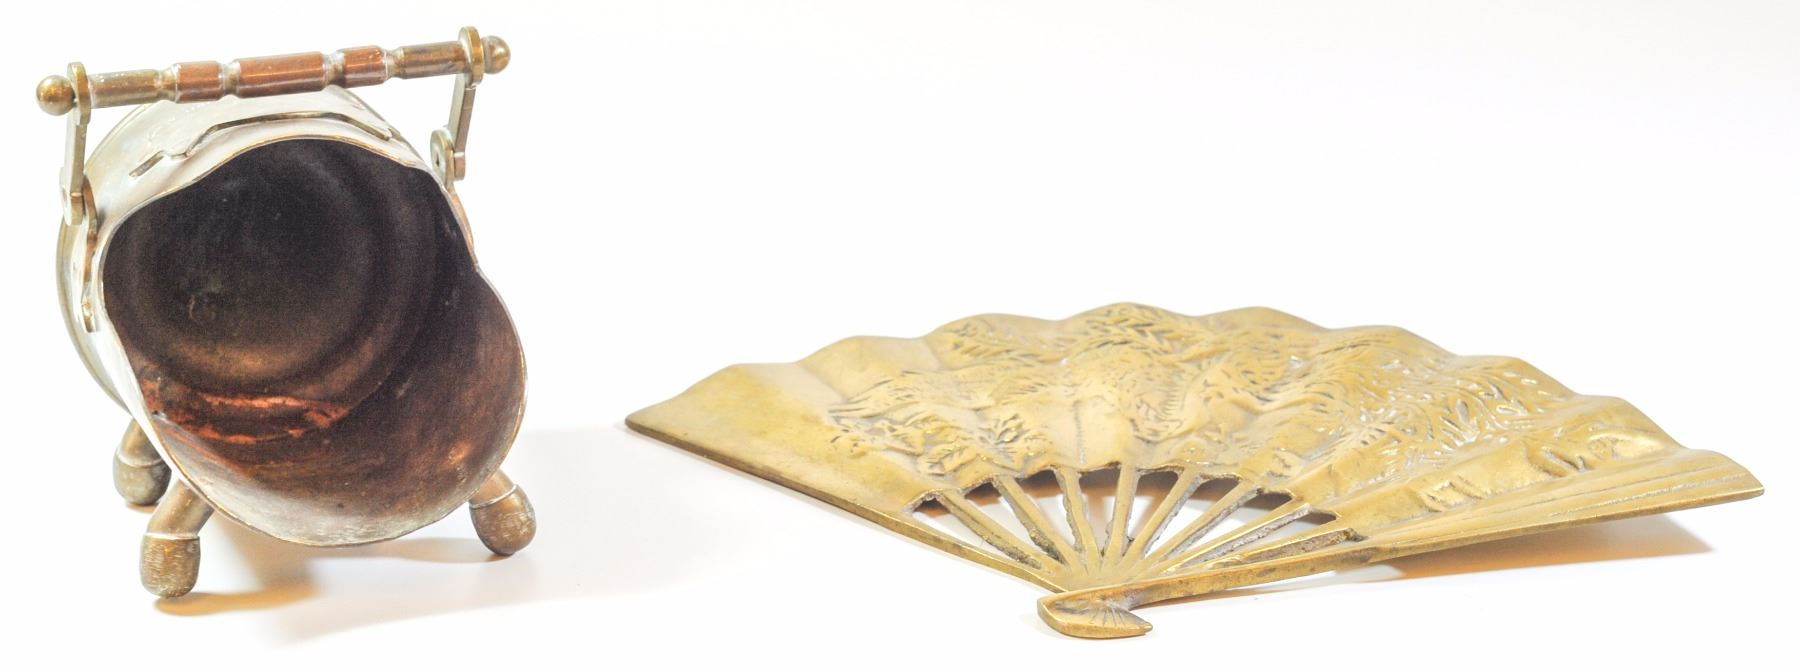 Contemporary Decorative Wall Fan Frieze - All About Wallart ...